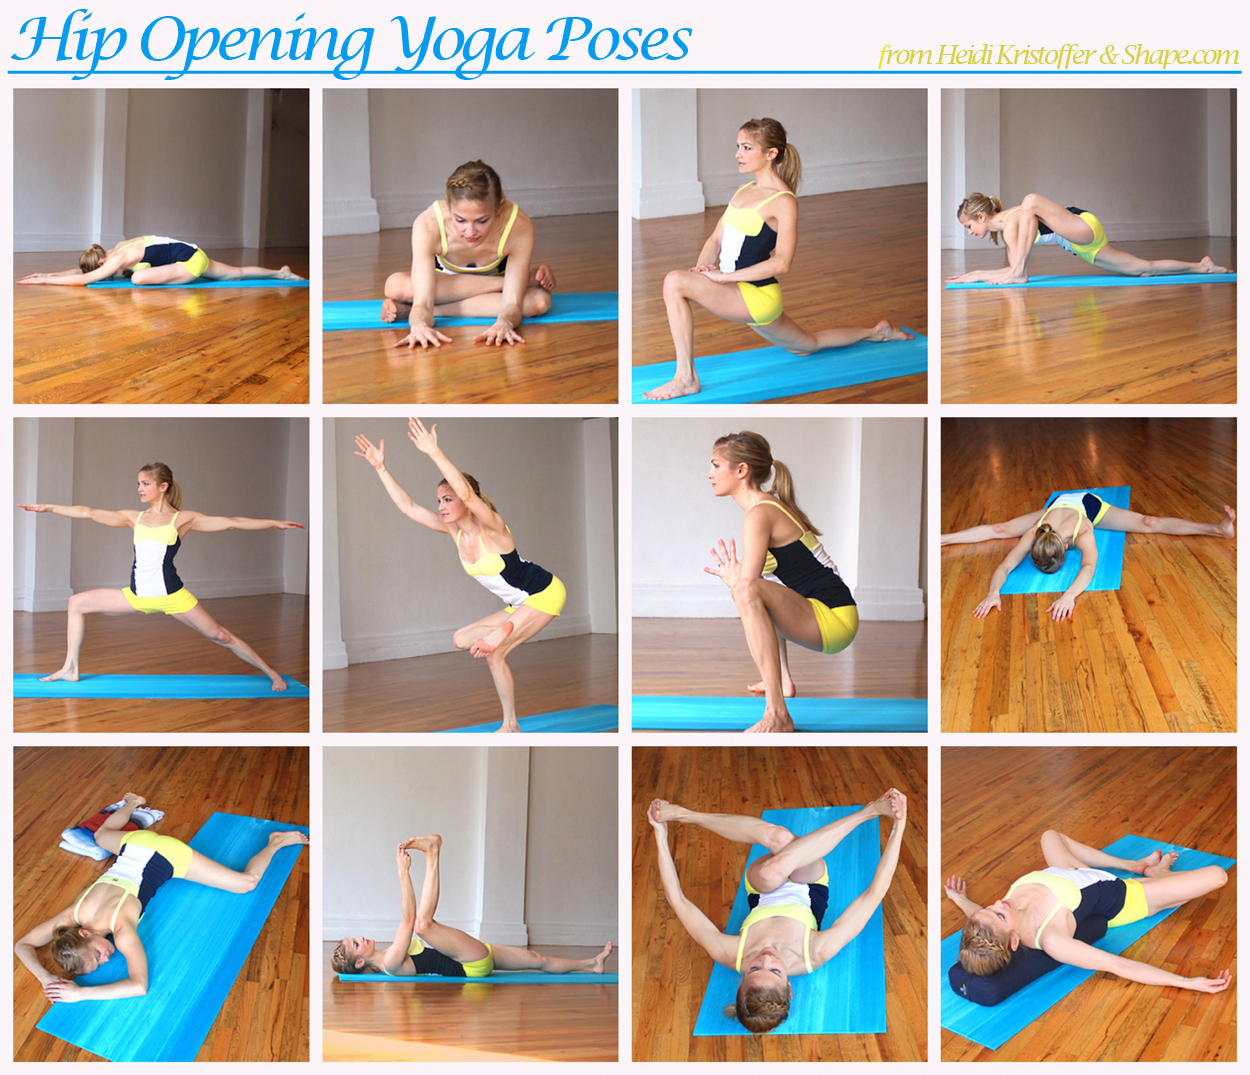 Yoga - Hip Openers on Pinterest | Tight Hips, Hip Opening ...